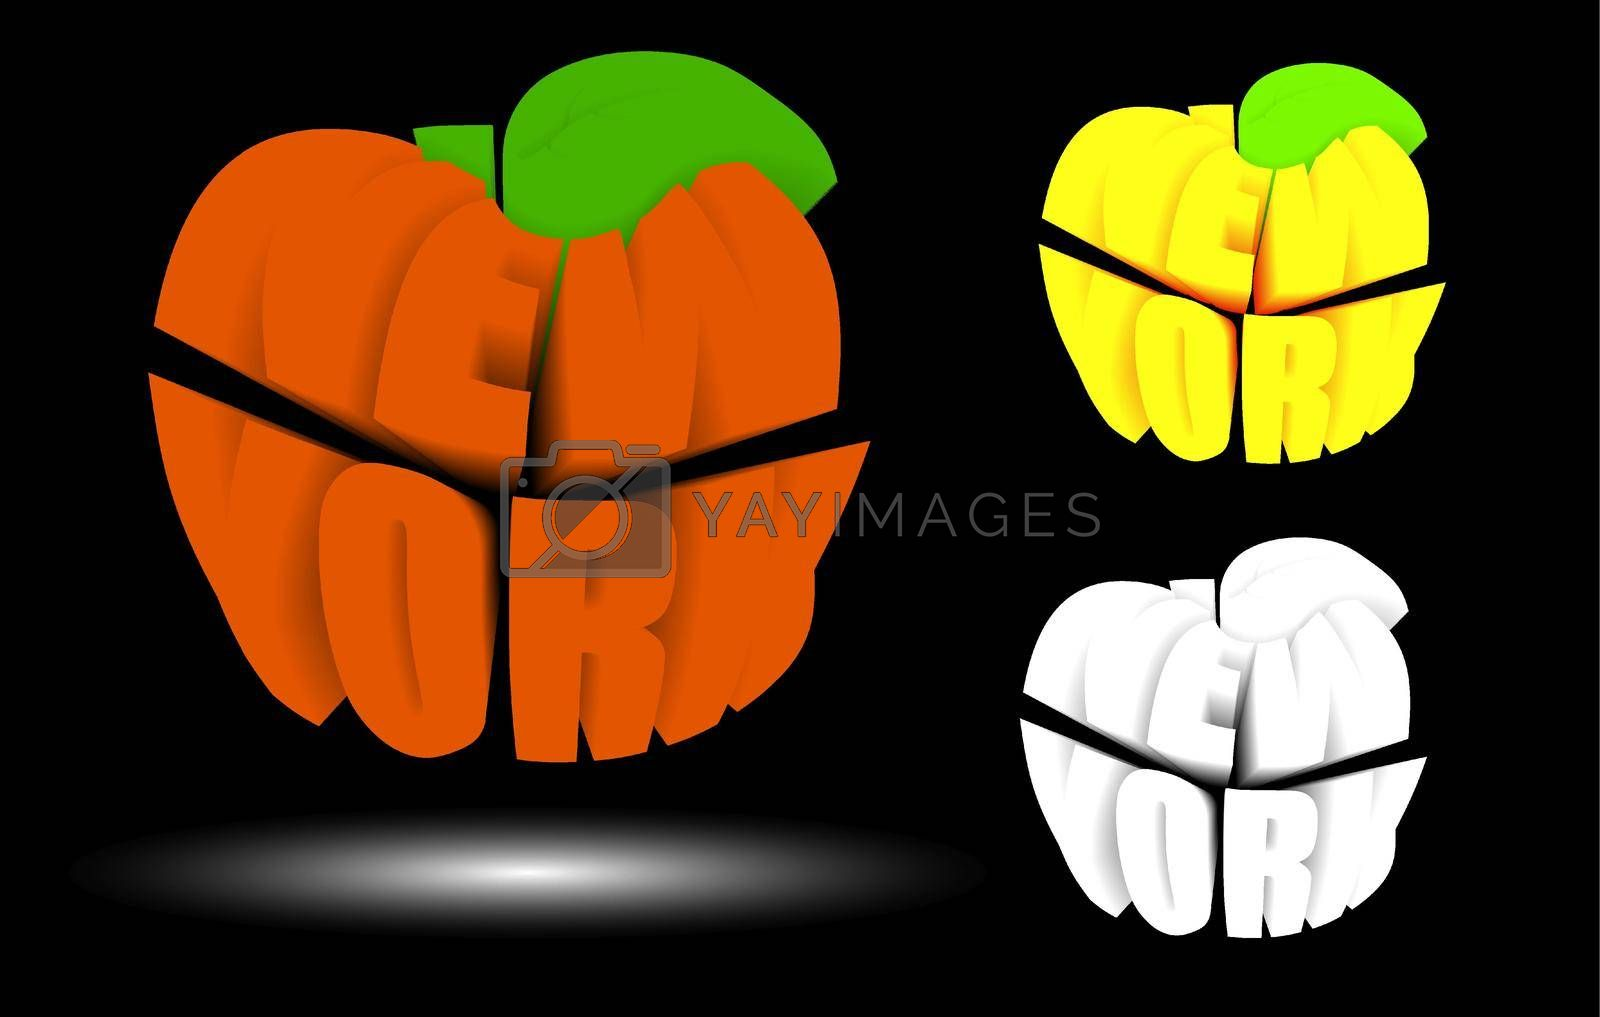 New York is big apple in 3D, metropolis of America. Name NY in shape of apple. Sticker for web design. Vector